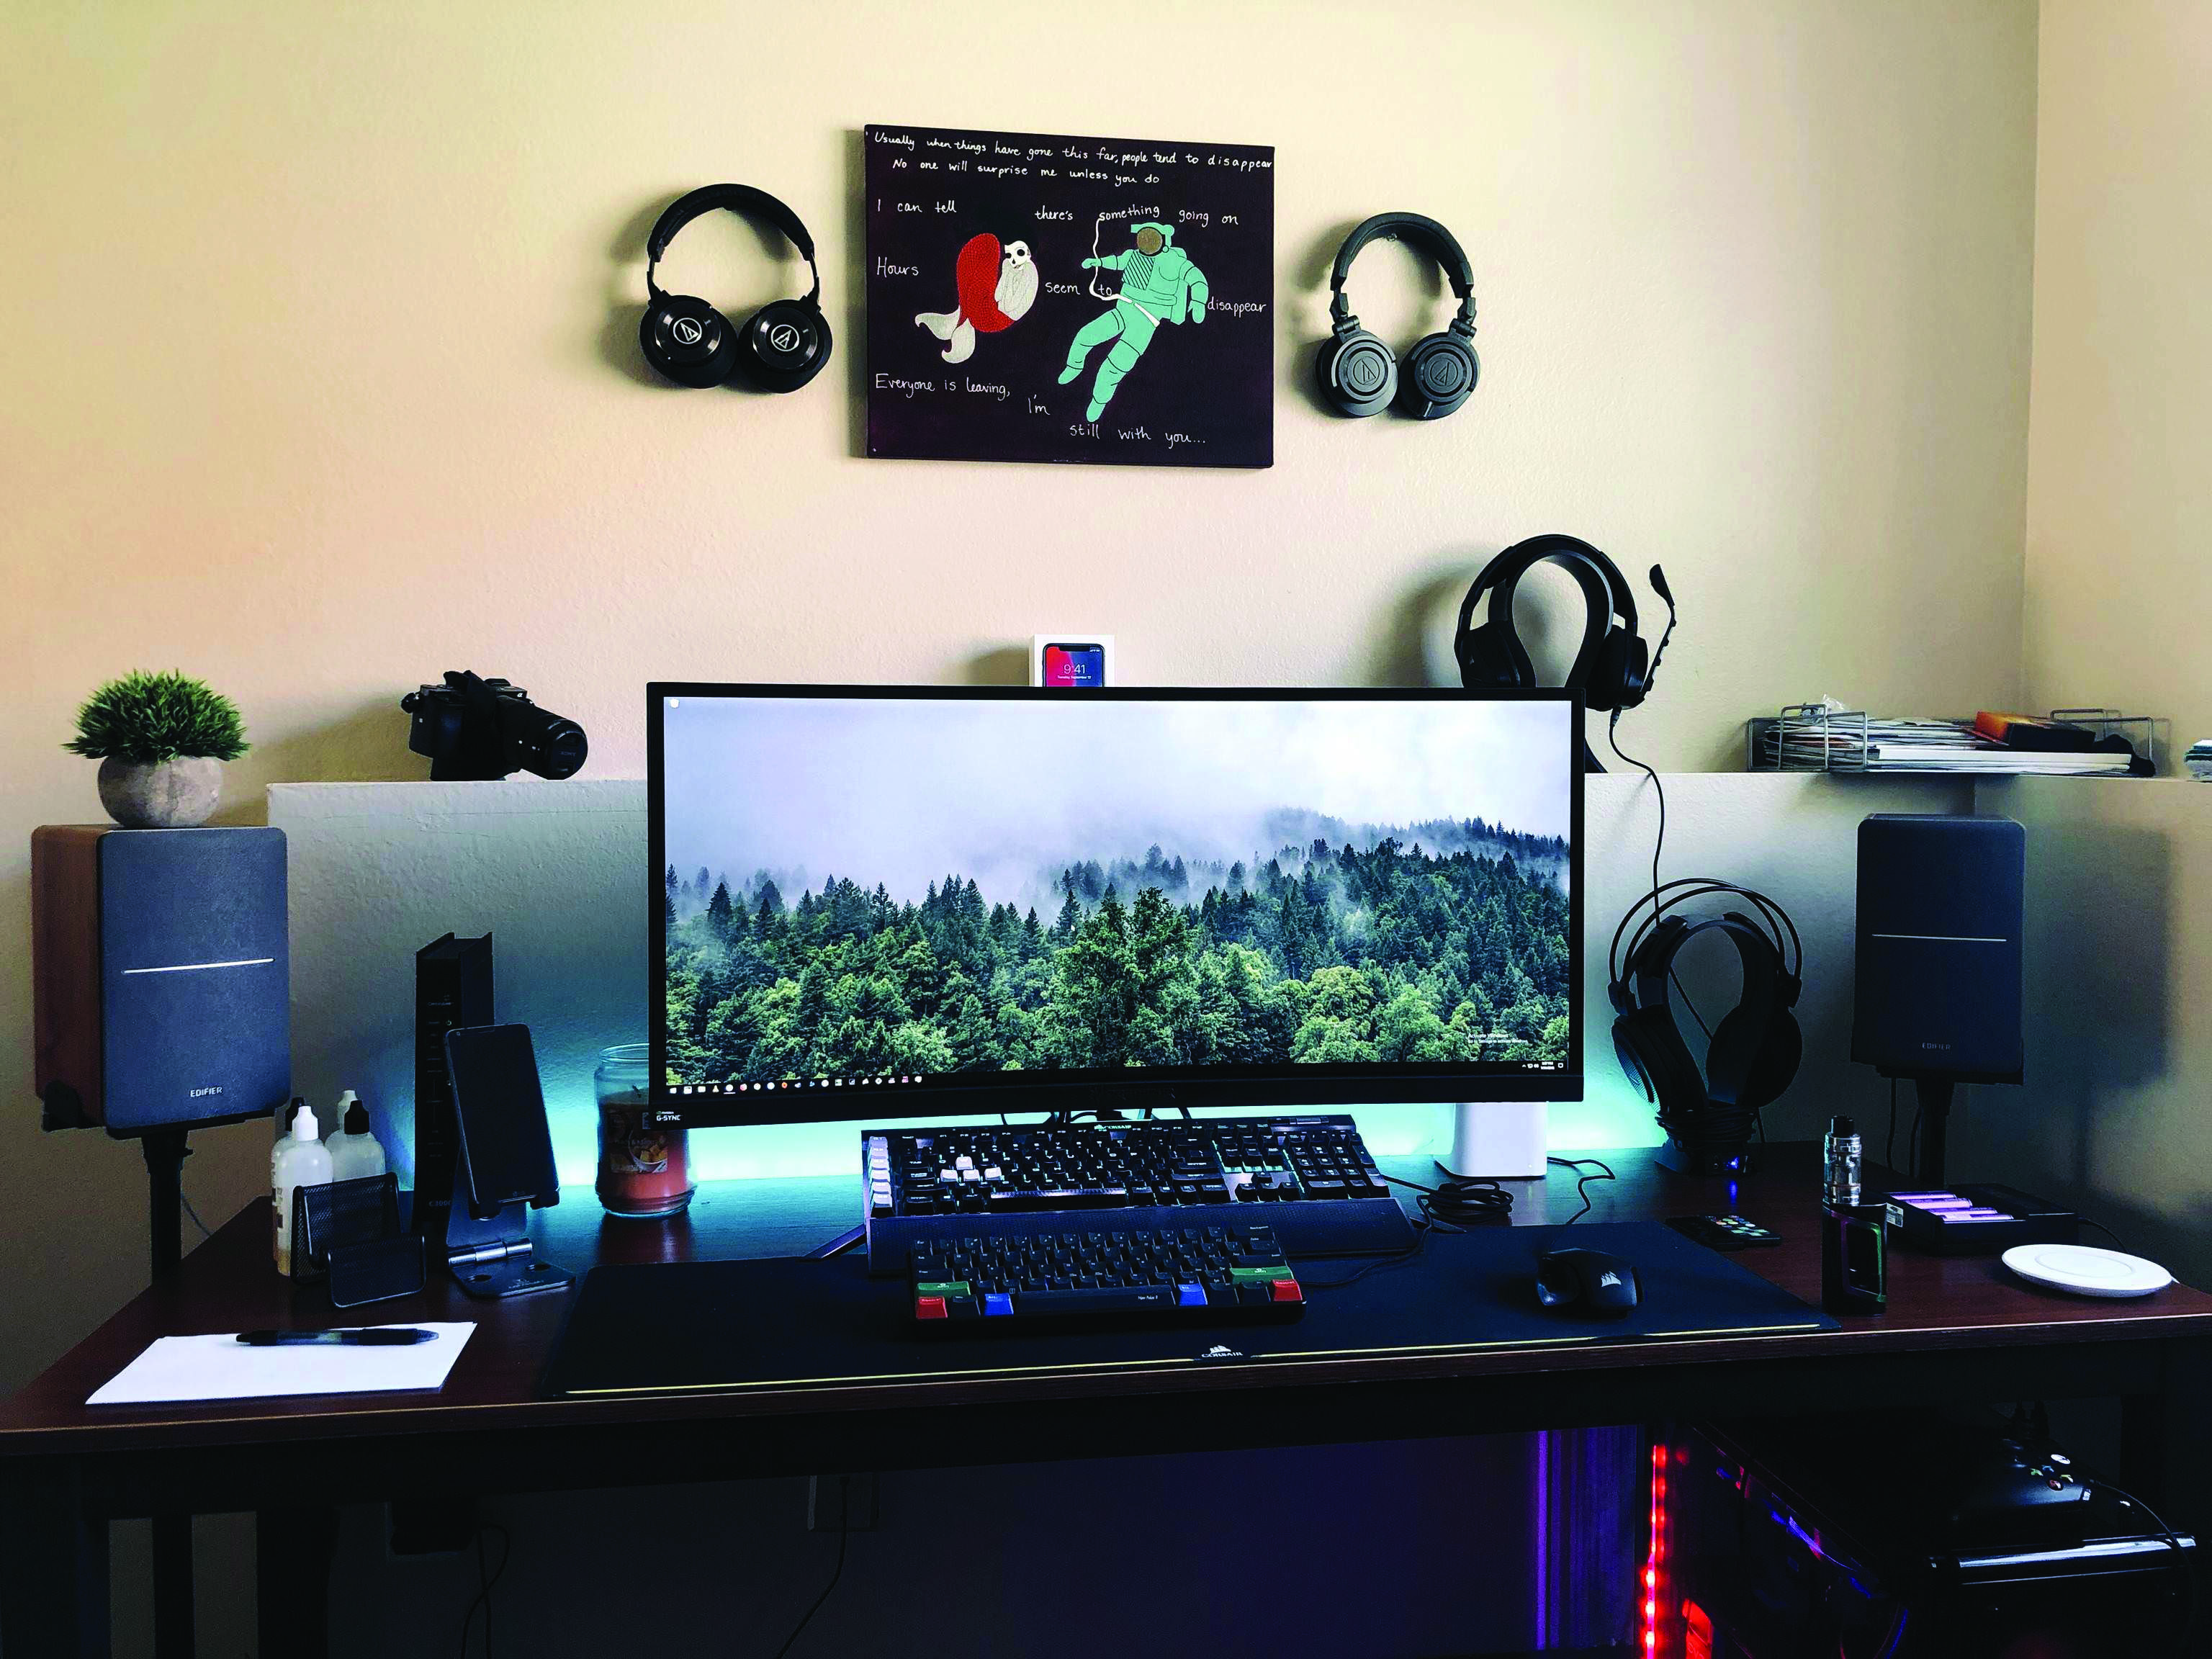 Gaming Computer Desk Dova Home Gaming Computer Desk Gaming Room Setup Room Setup